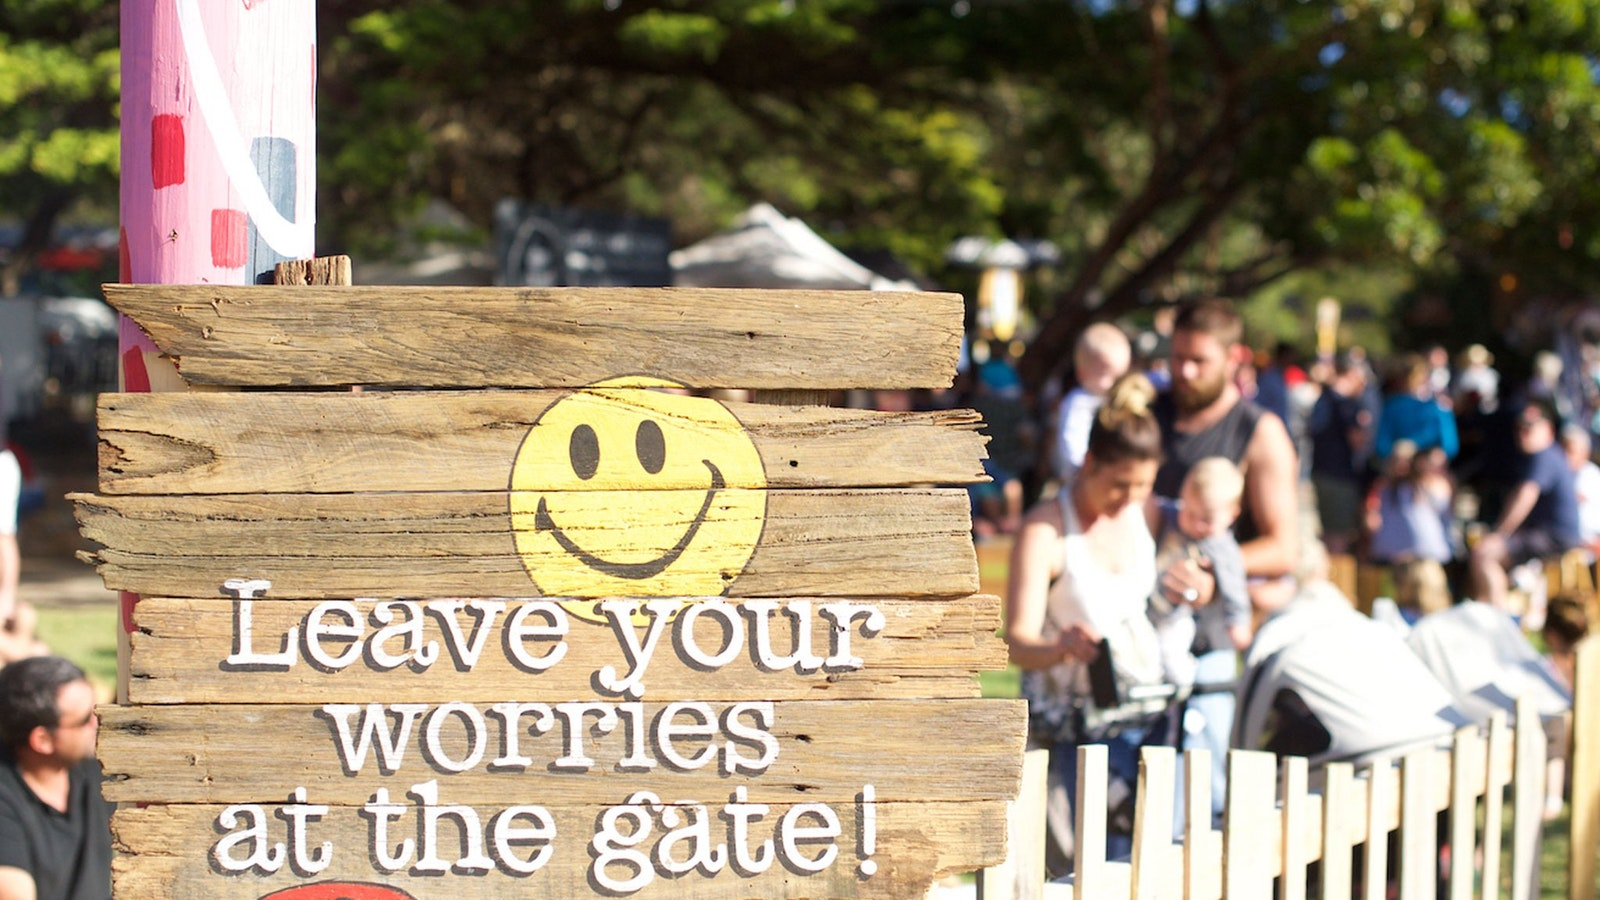 Leave your worries at the gate